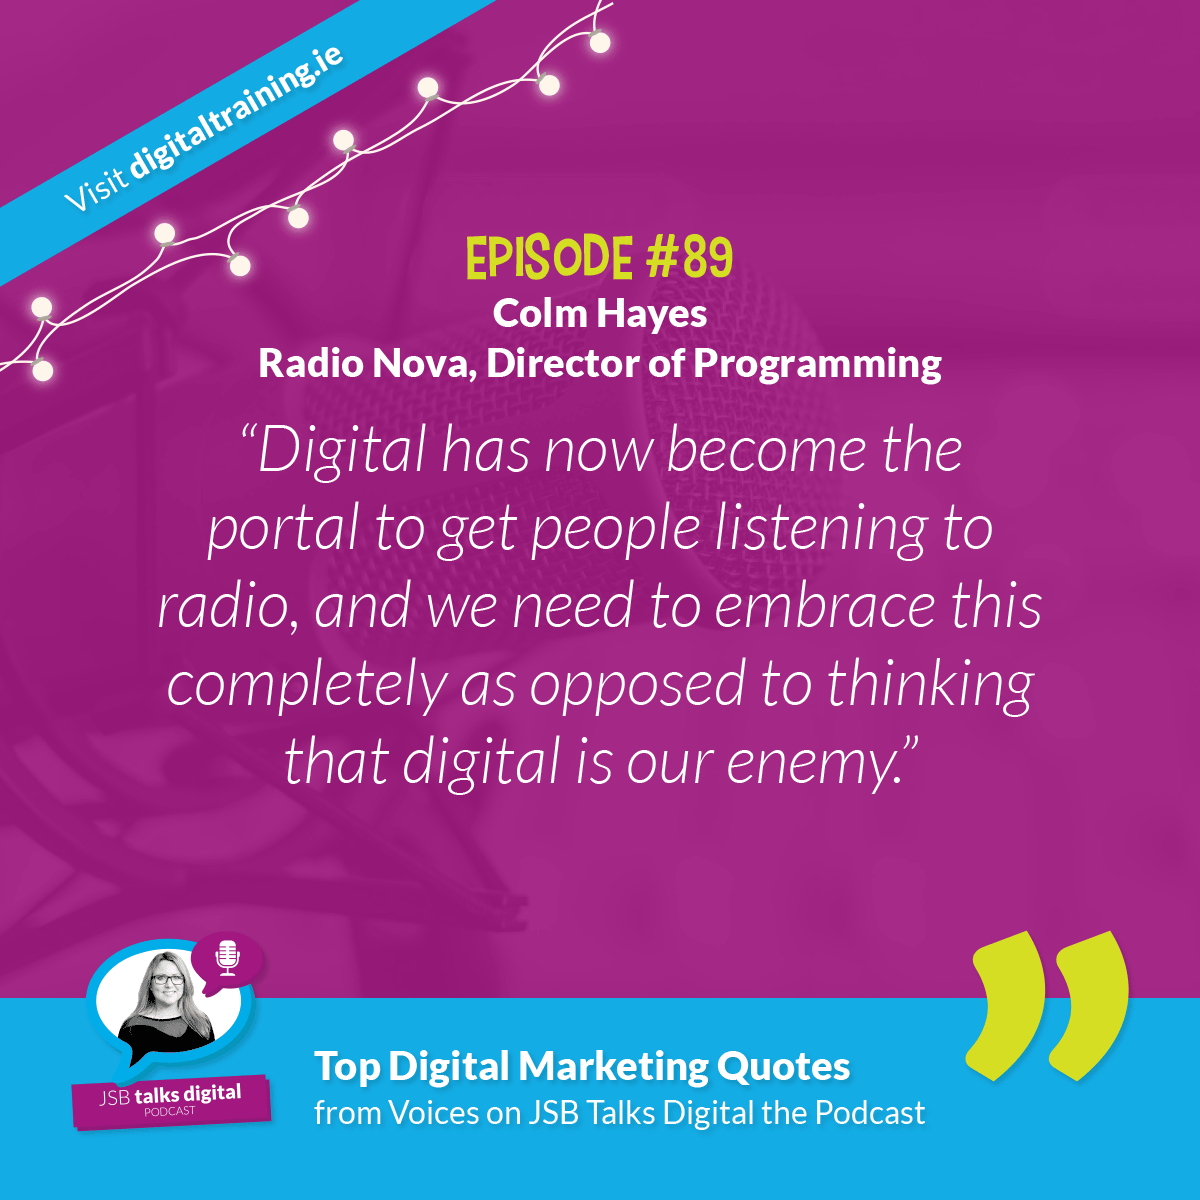 """Digital has now become the portal to get people listening to radio, and we need to embrace this completely as opposed to thinking that digital is our enemy."" - Colm Hayes, Radio Nova"